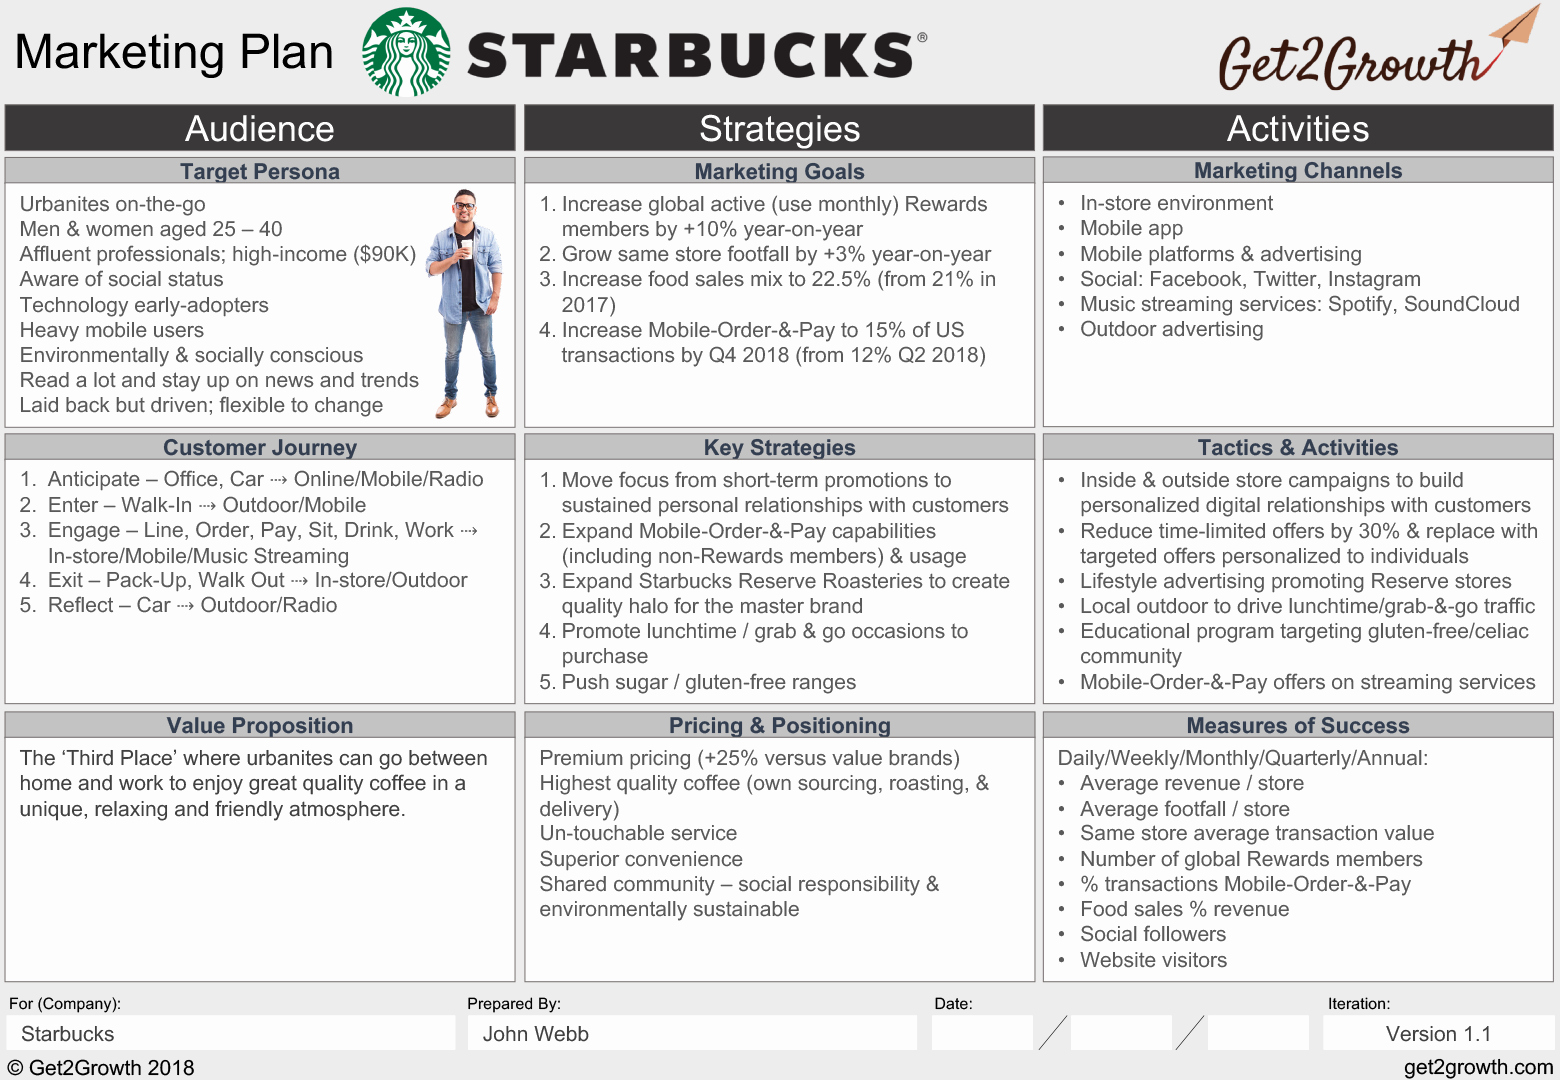 Marketing Action Plan Templates Luxury Marketing Plan Example Starbucks E Page Marketing Plan